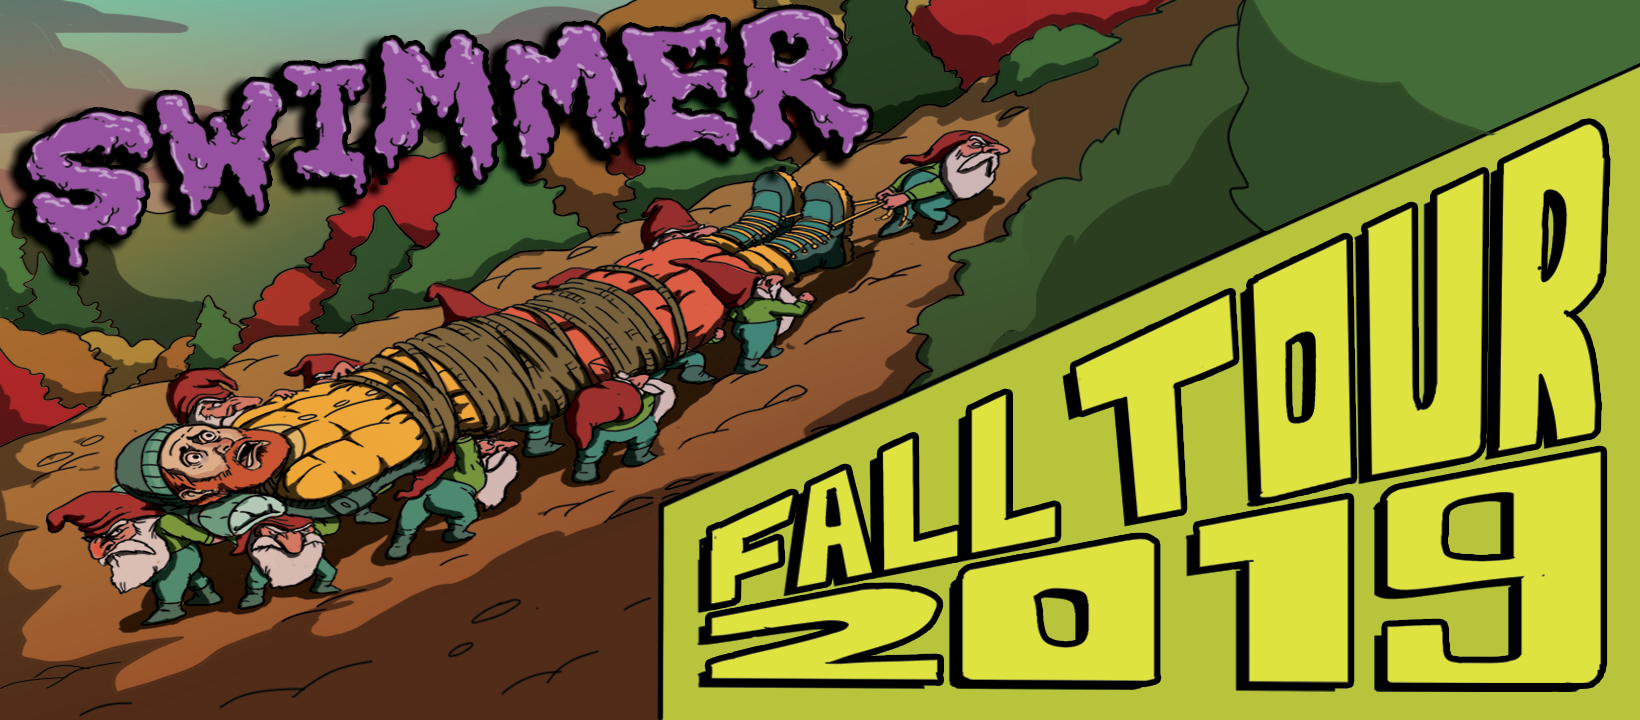 Swimmer Fall tour 2019_FacebookCover.png